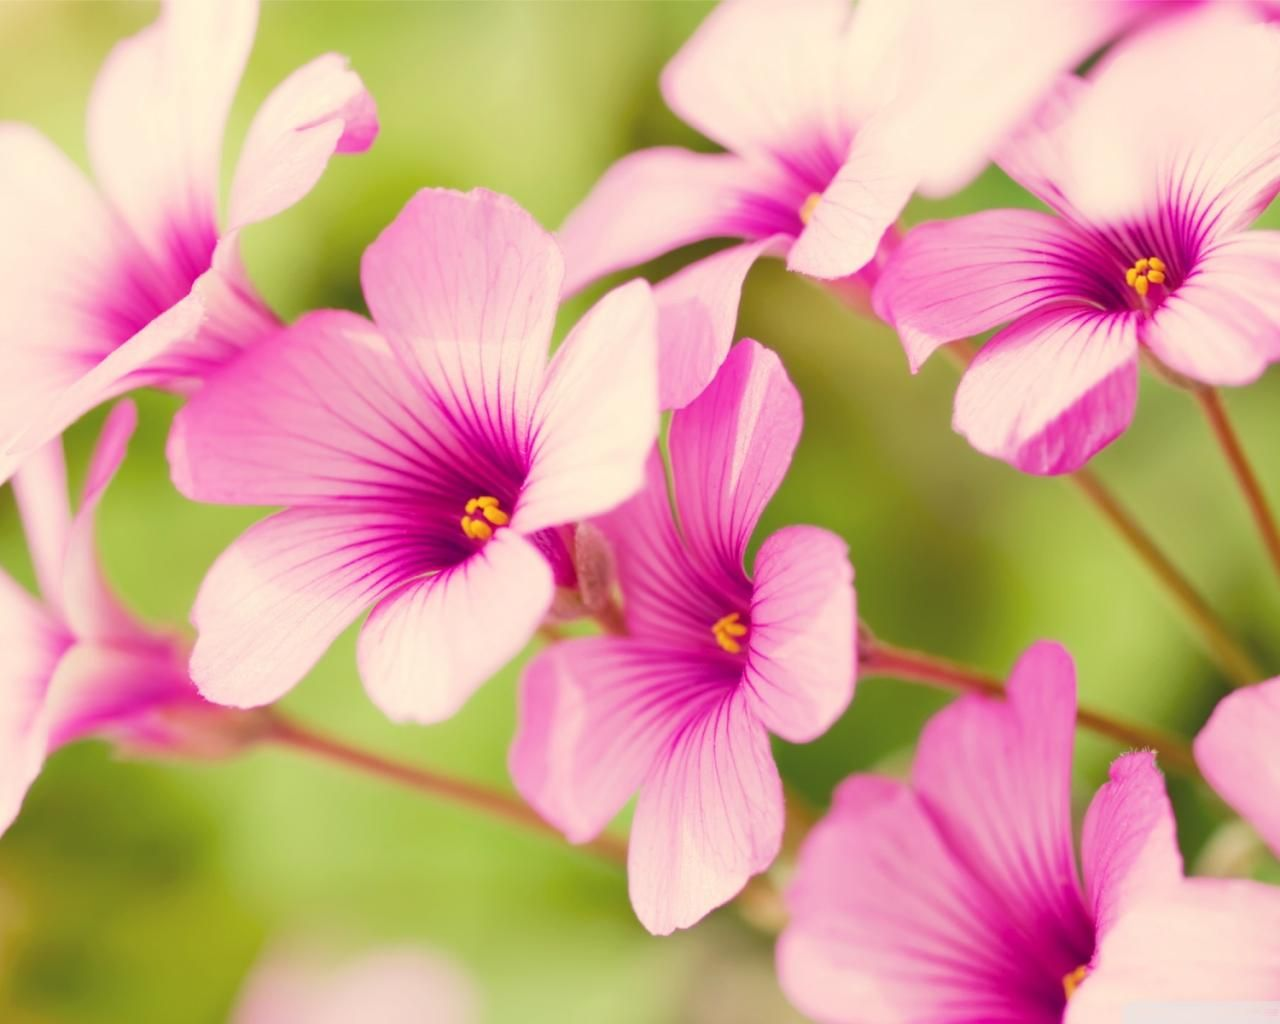 Flower wallpaper designs free stock photos download free 1280 flower wallpaper designs free stock photos download free 12801024 flowers wallpaper download izmirmasajfo Images